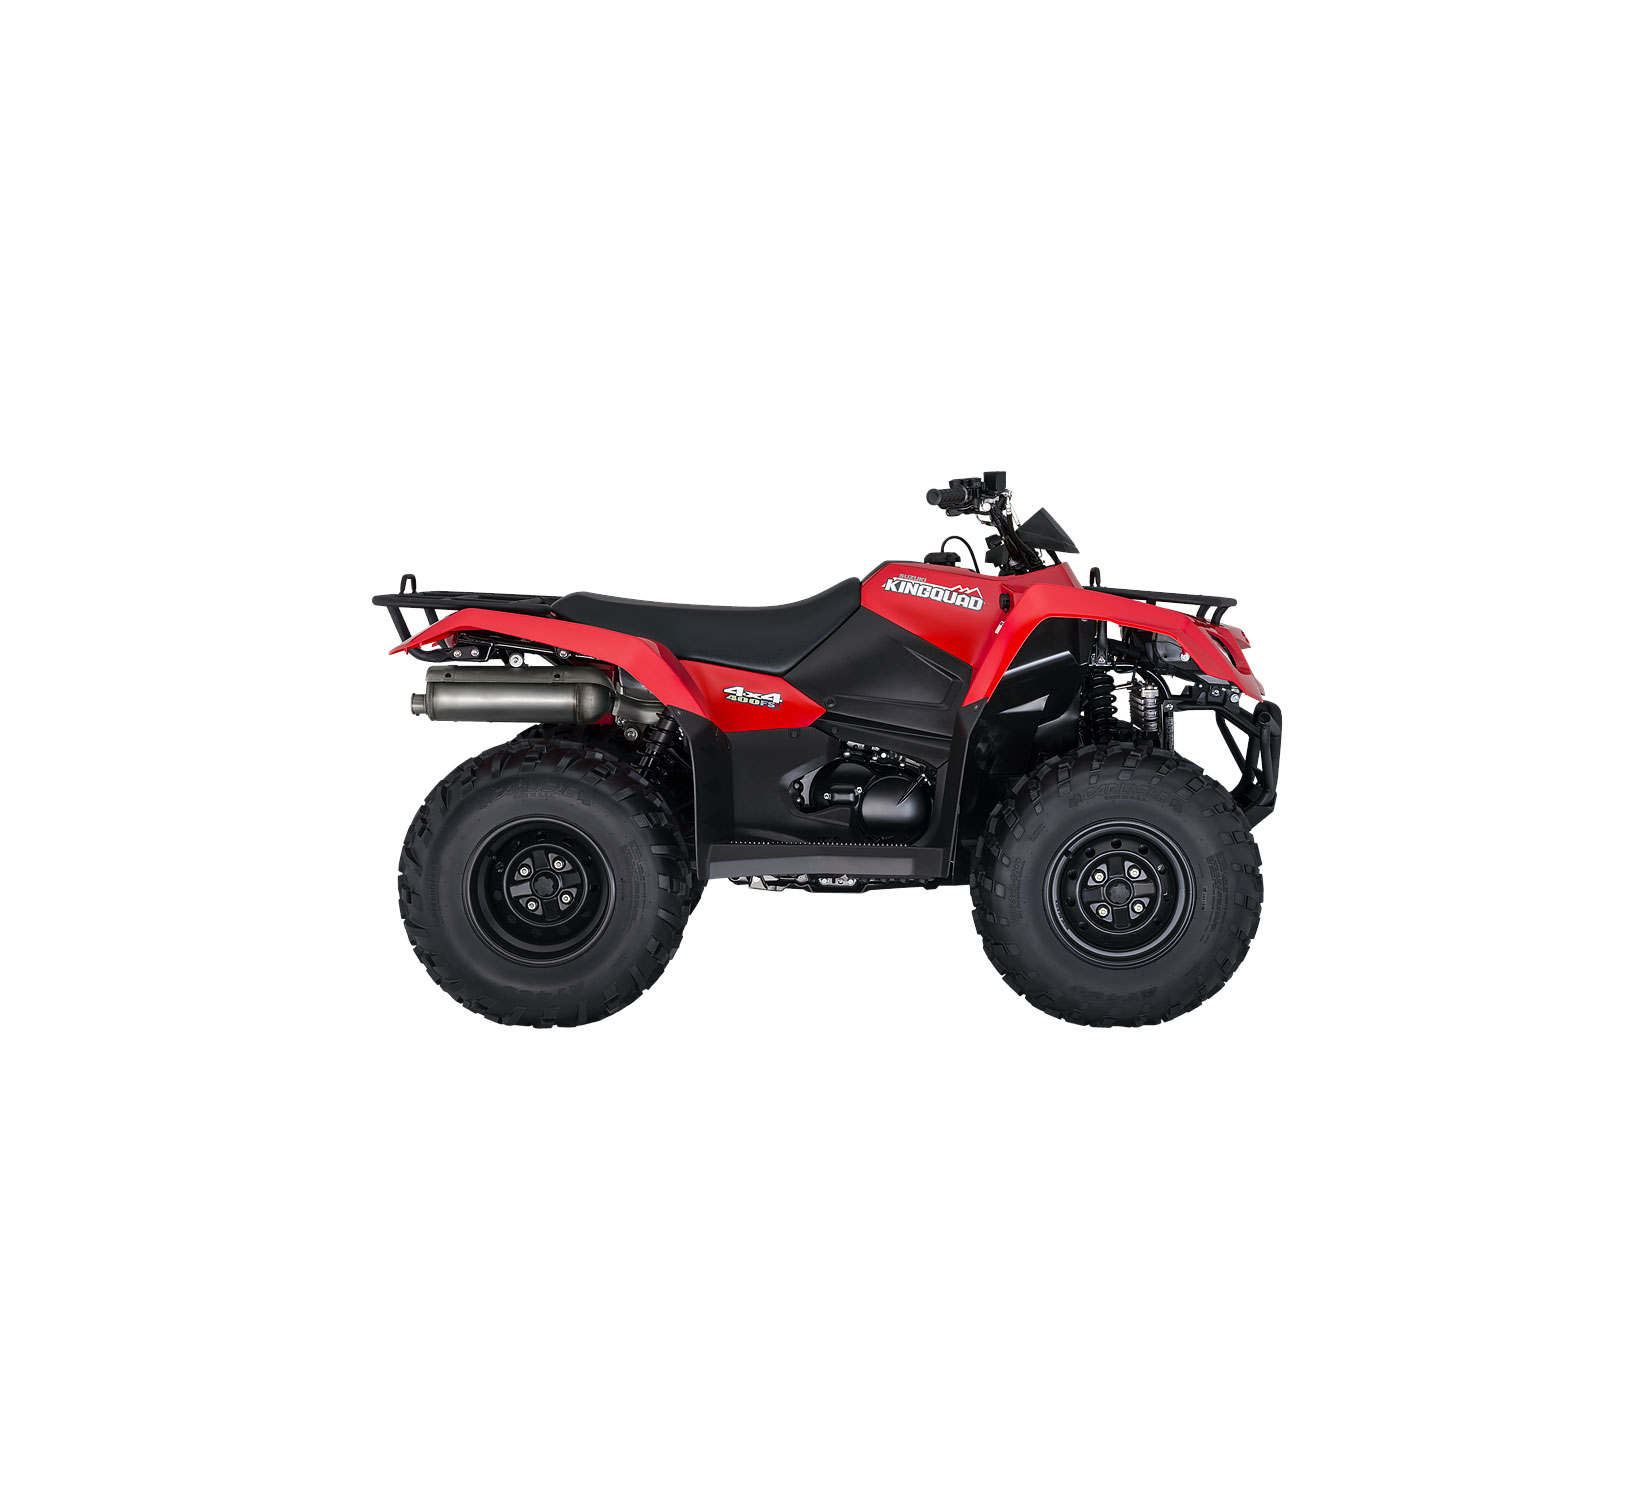 suzuki king quad 400 4wd manual jmk quads. Black Bedroom Furniture Sets. Home Design Ideas